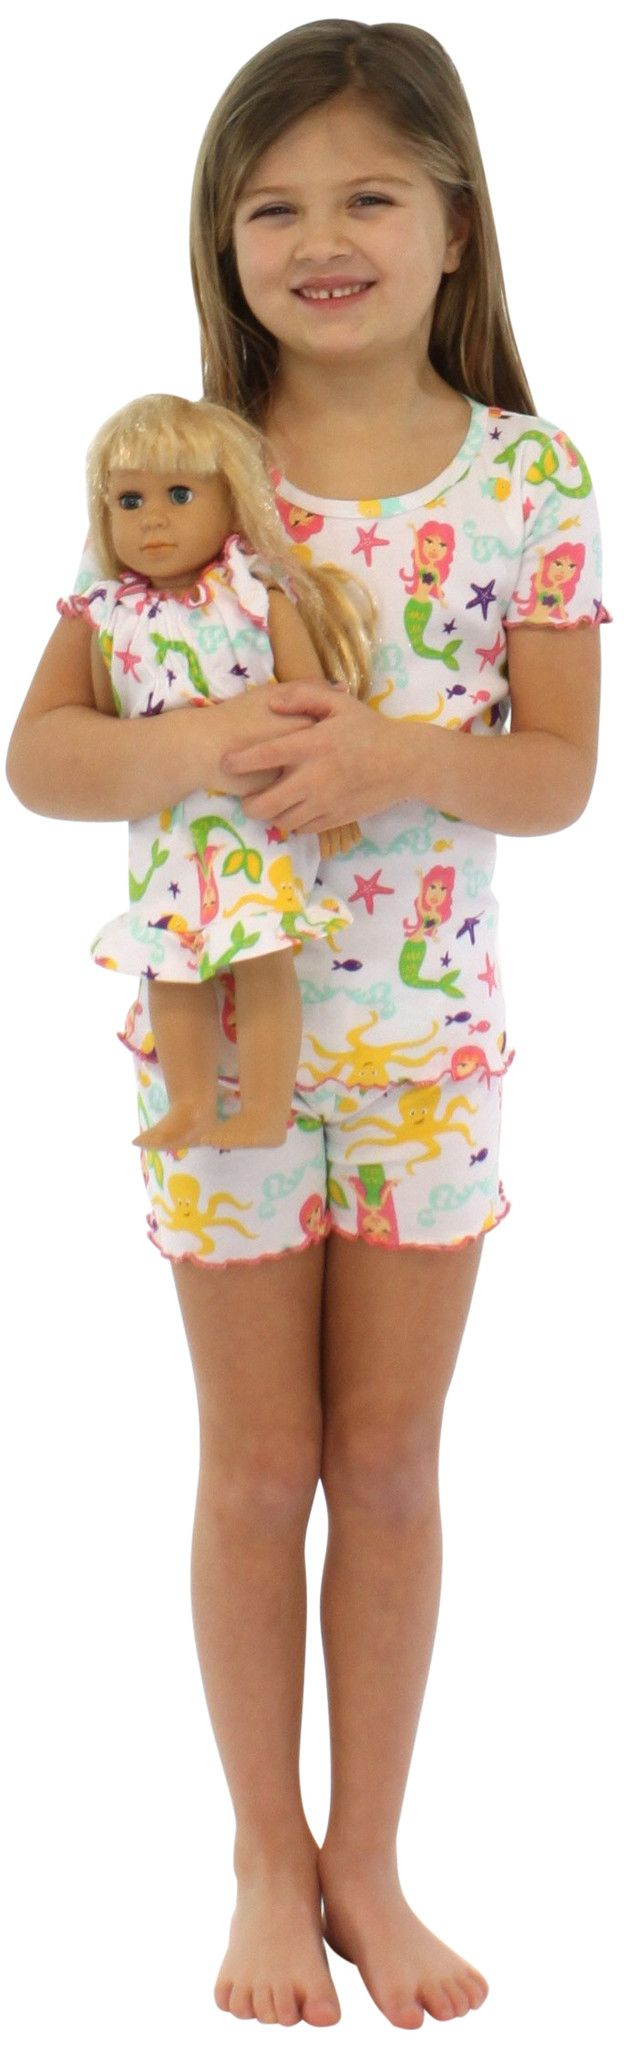 SleepytimePjs Kids Ruffle Shorts & Tee Pajama Set